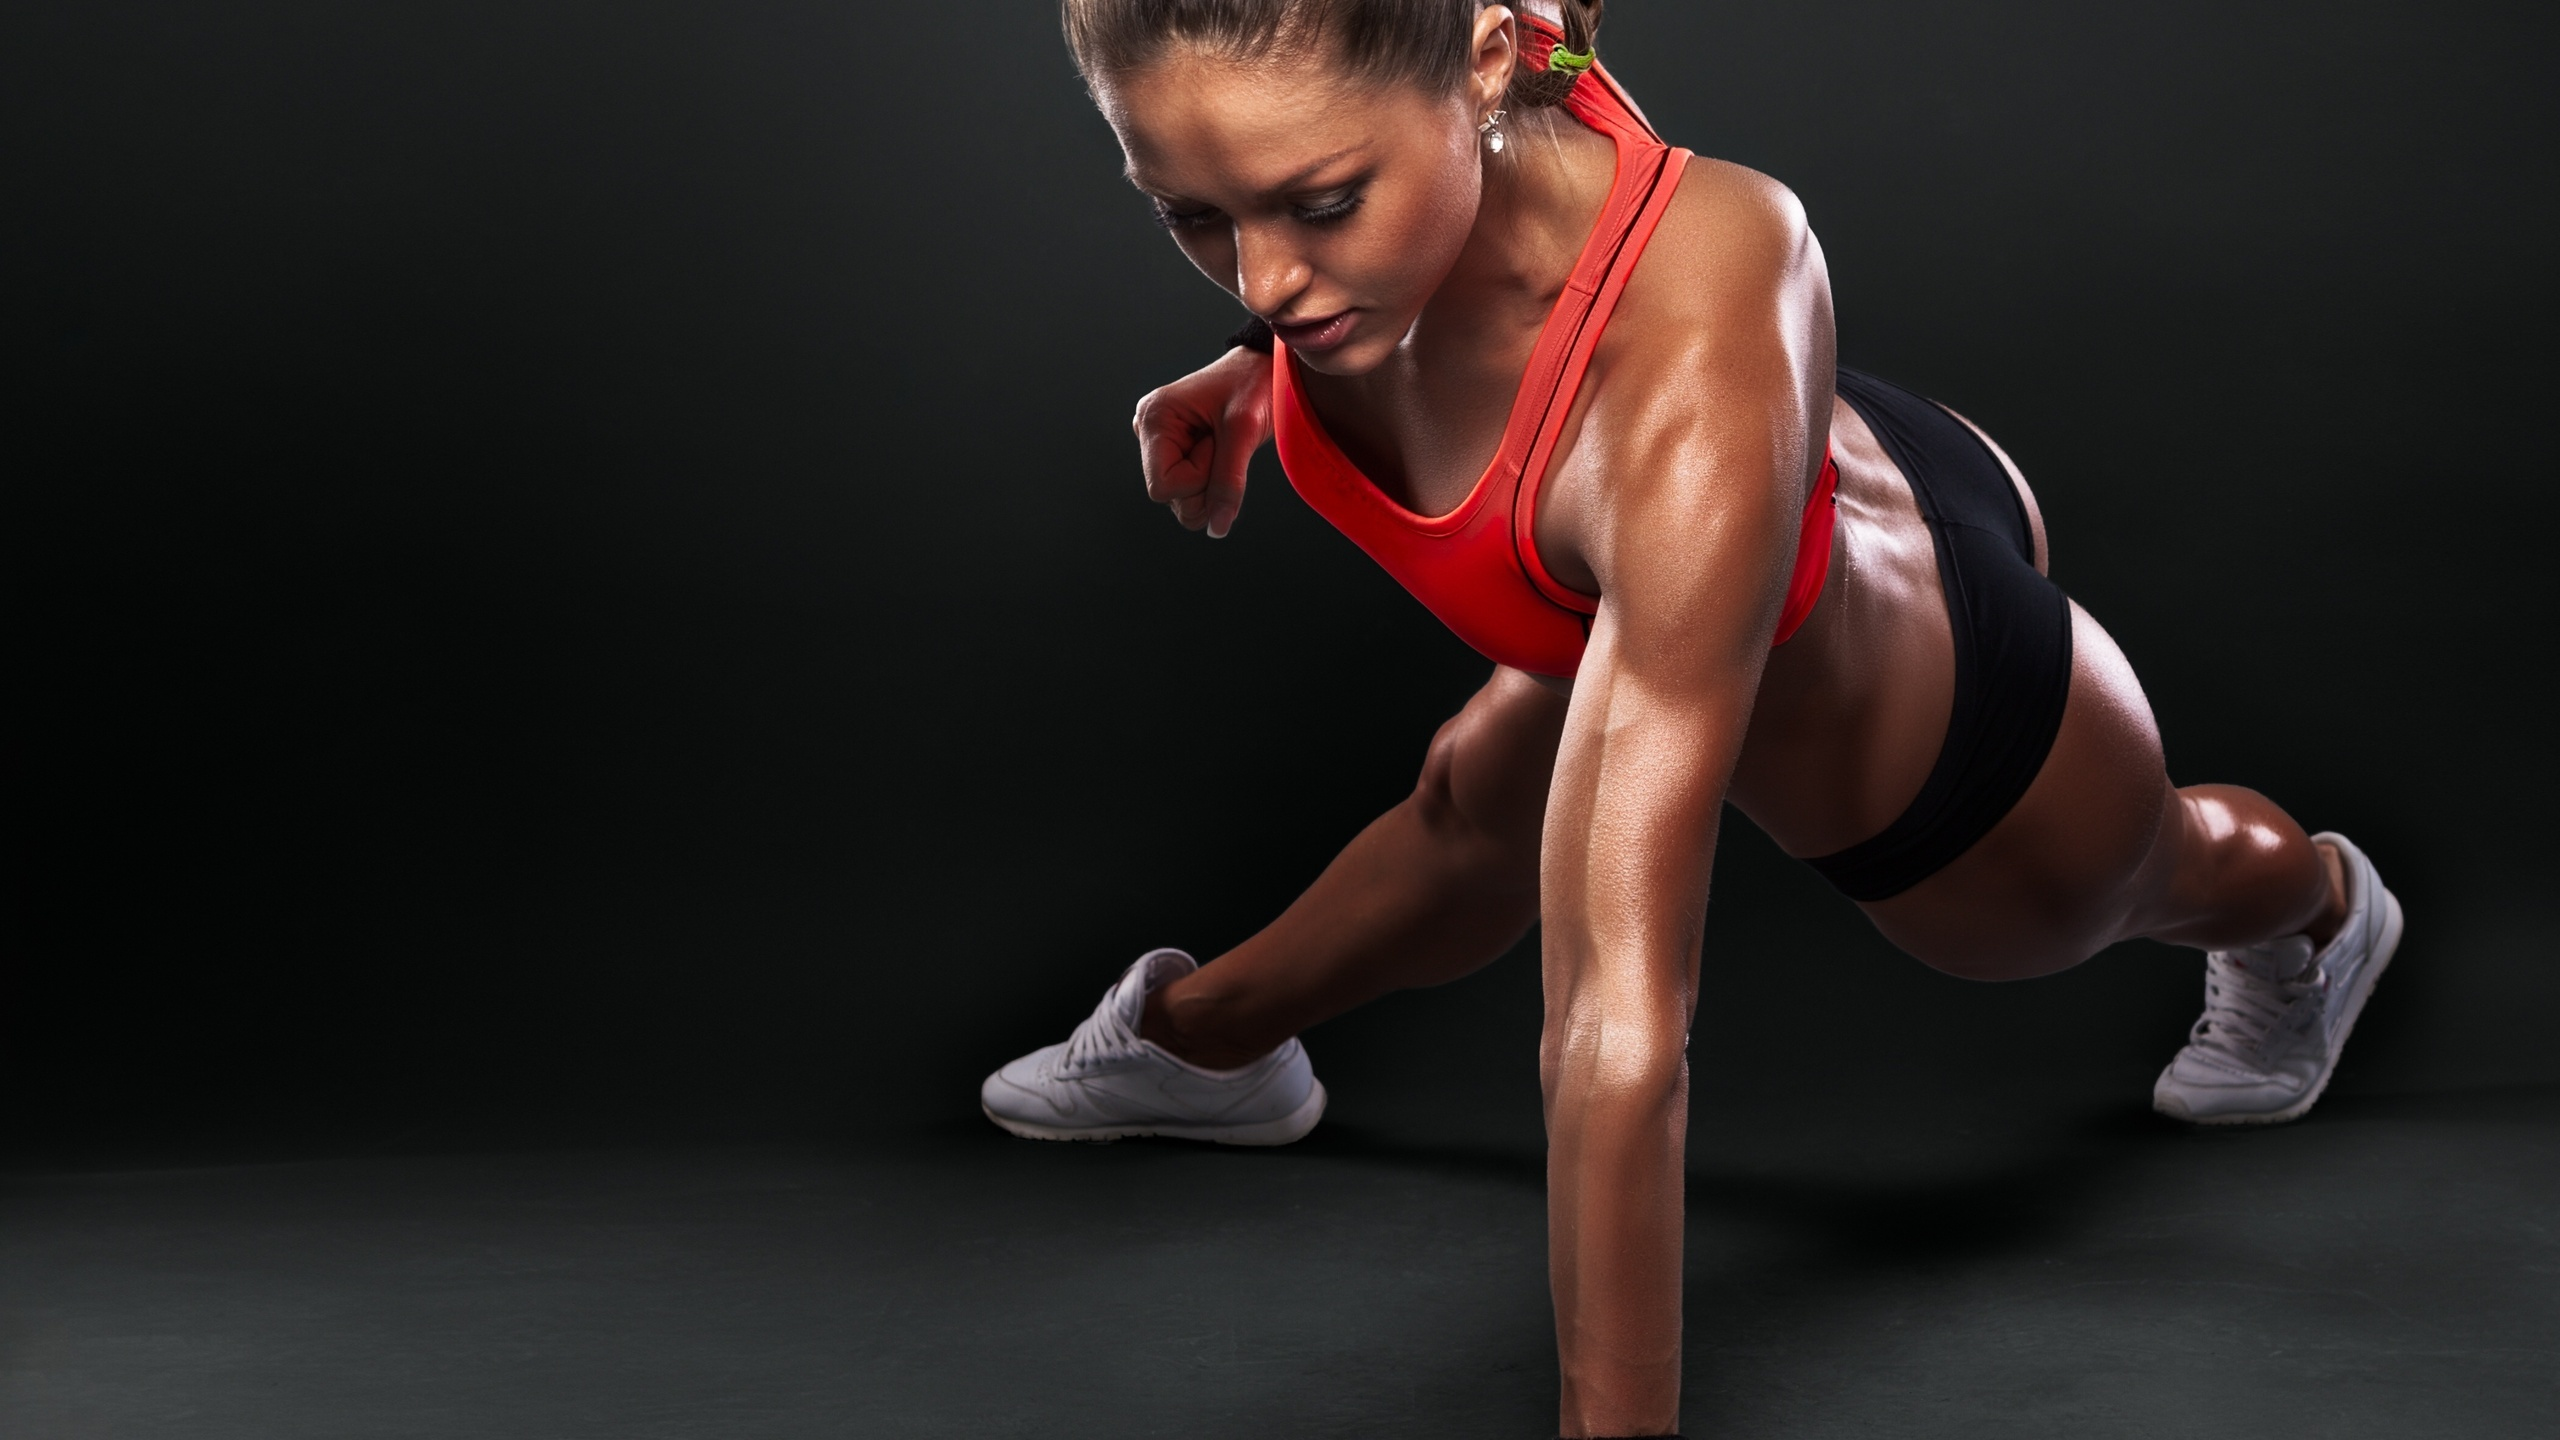 114 Fitness HD Wallpapers | Backgrounds - Wallpaper Abyss